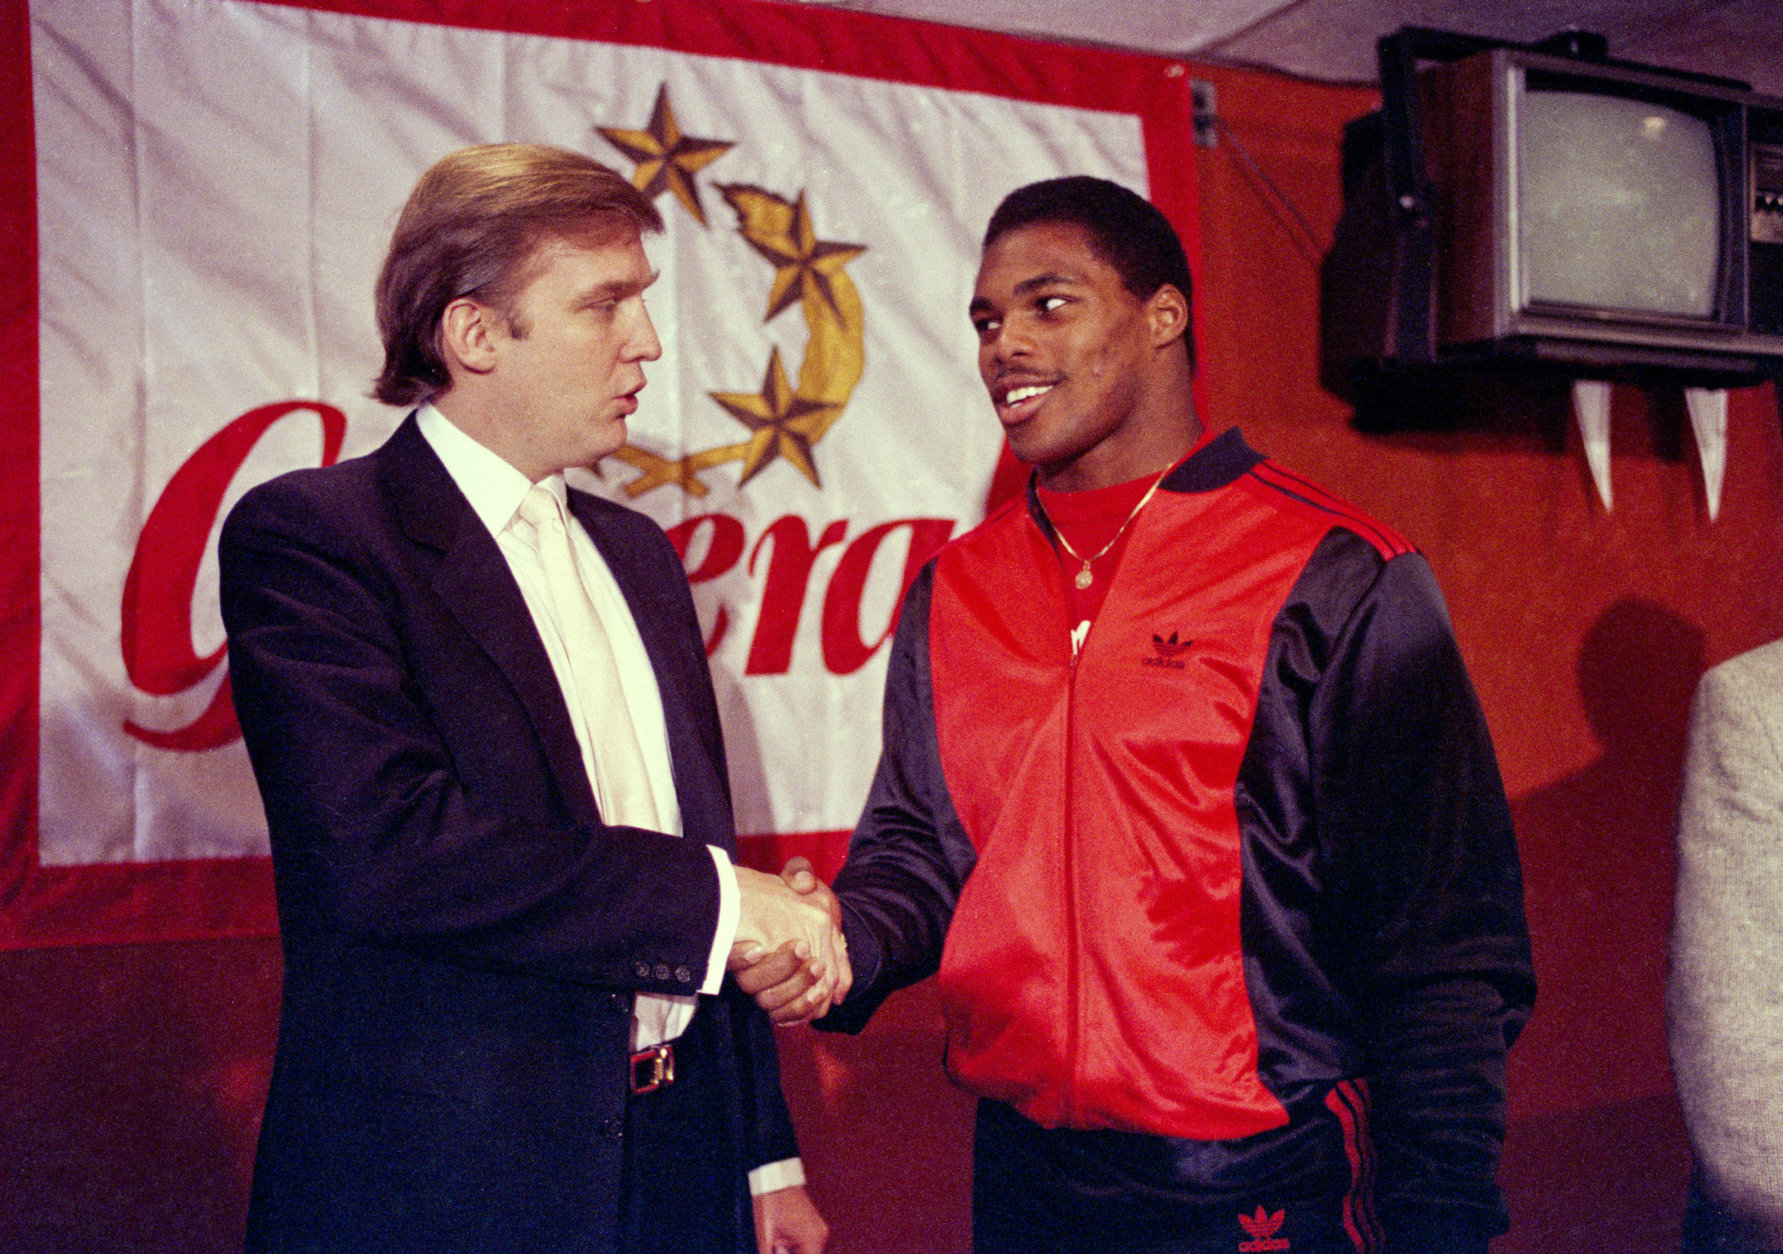 FILE - In this March 8, 1984, file photo, Donald Trump shakes hands with Herschel Walker in New York after agreement on a 4-year contract with the New Jersey Generals USFL football team. The New Jersey Generals have been largely forgotten, but Trump's ownership of the team was formative in his evolution as a public figure and peerless self-publicist. With money and swagger, he led a shaky and relatively low-budget spring football league, the USFL, into a showdown with the NFL. (AP Photo/Dave Pickoff, File)